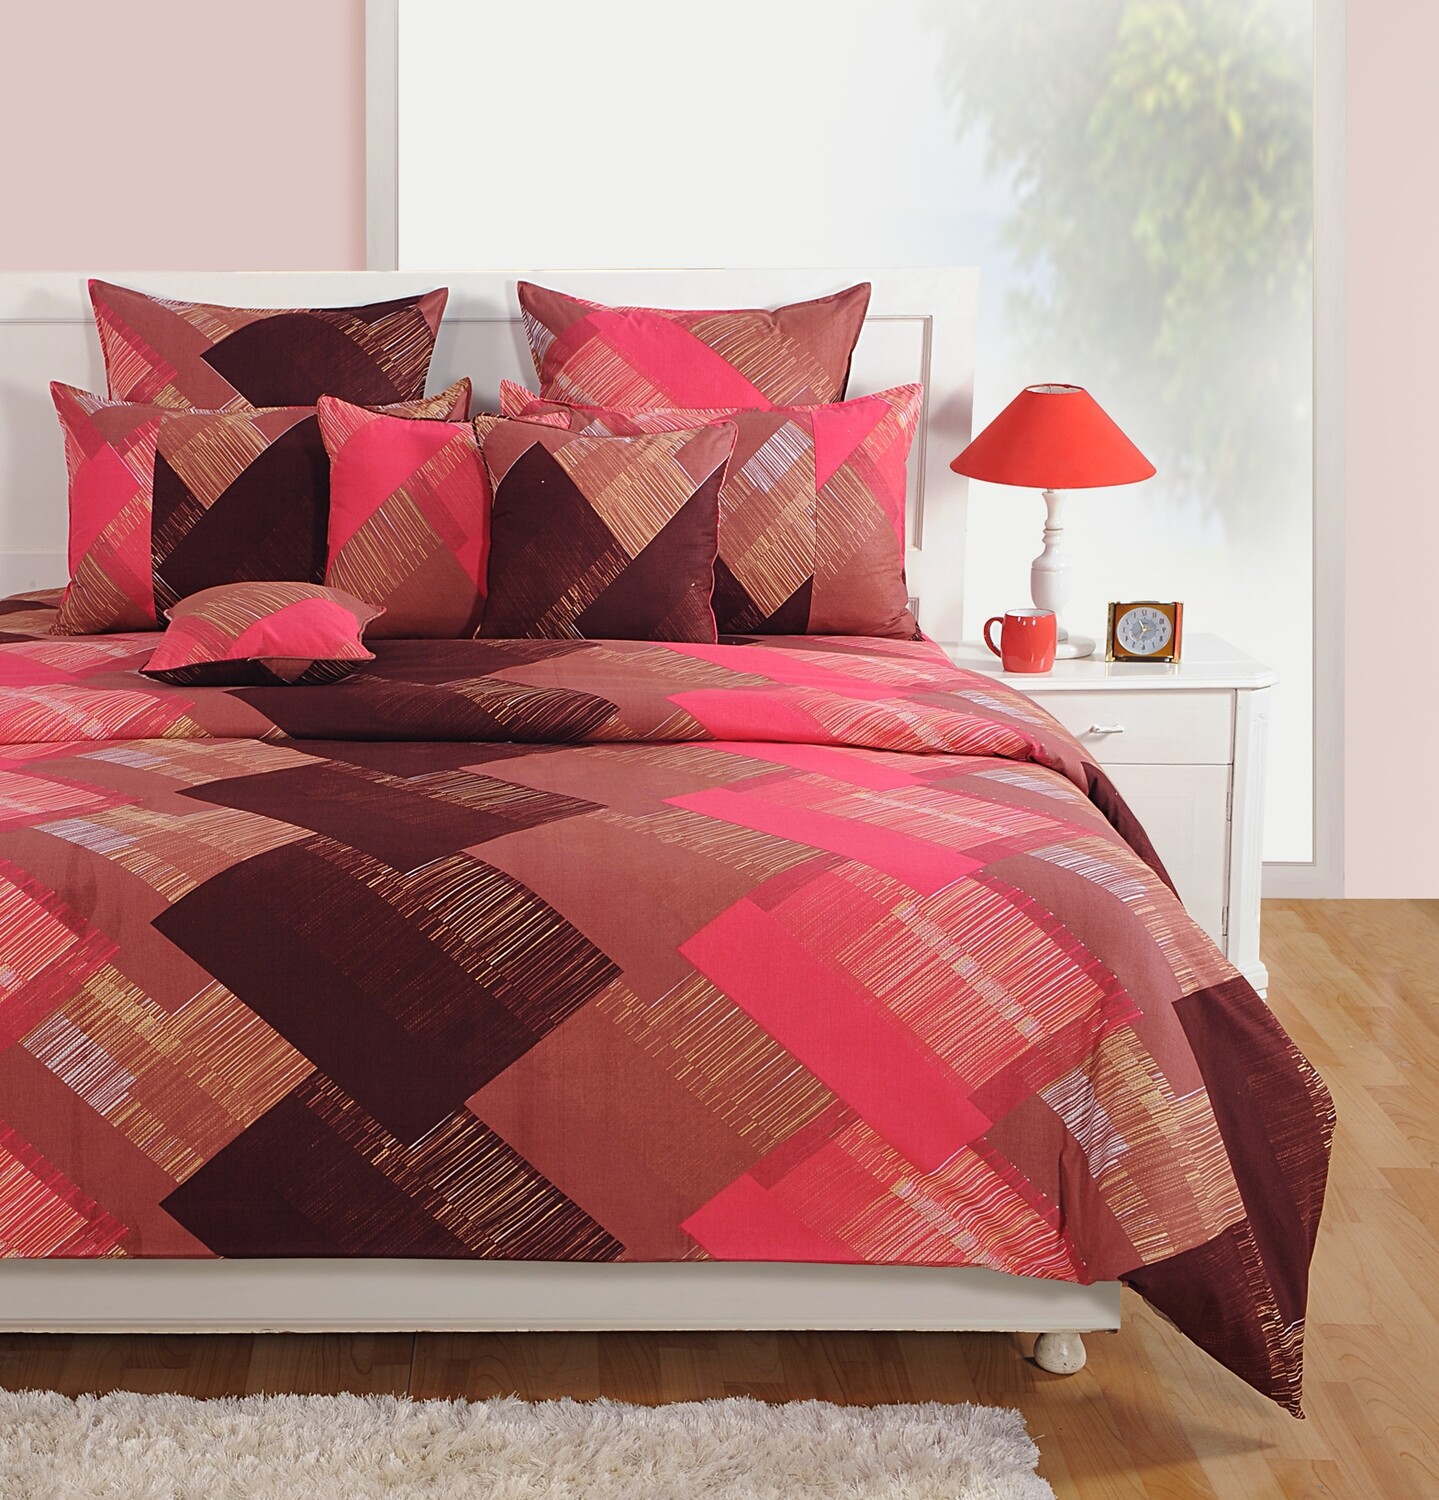 Swayam Peach Brown Geometric Pattern 180 TC Cotton Double Bedsheet with 2 Pillow Covers